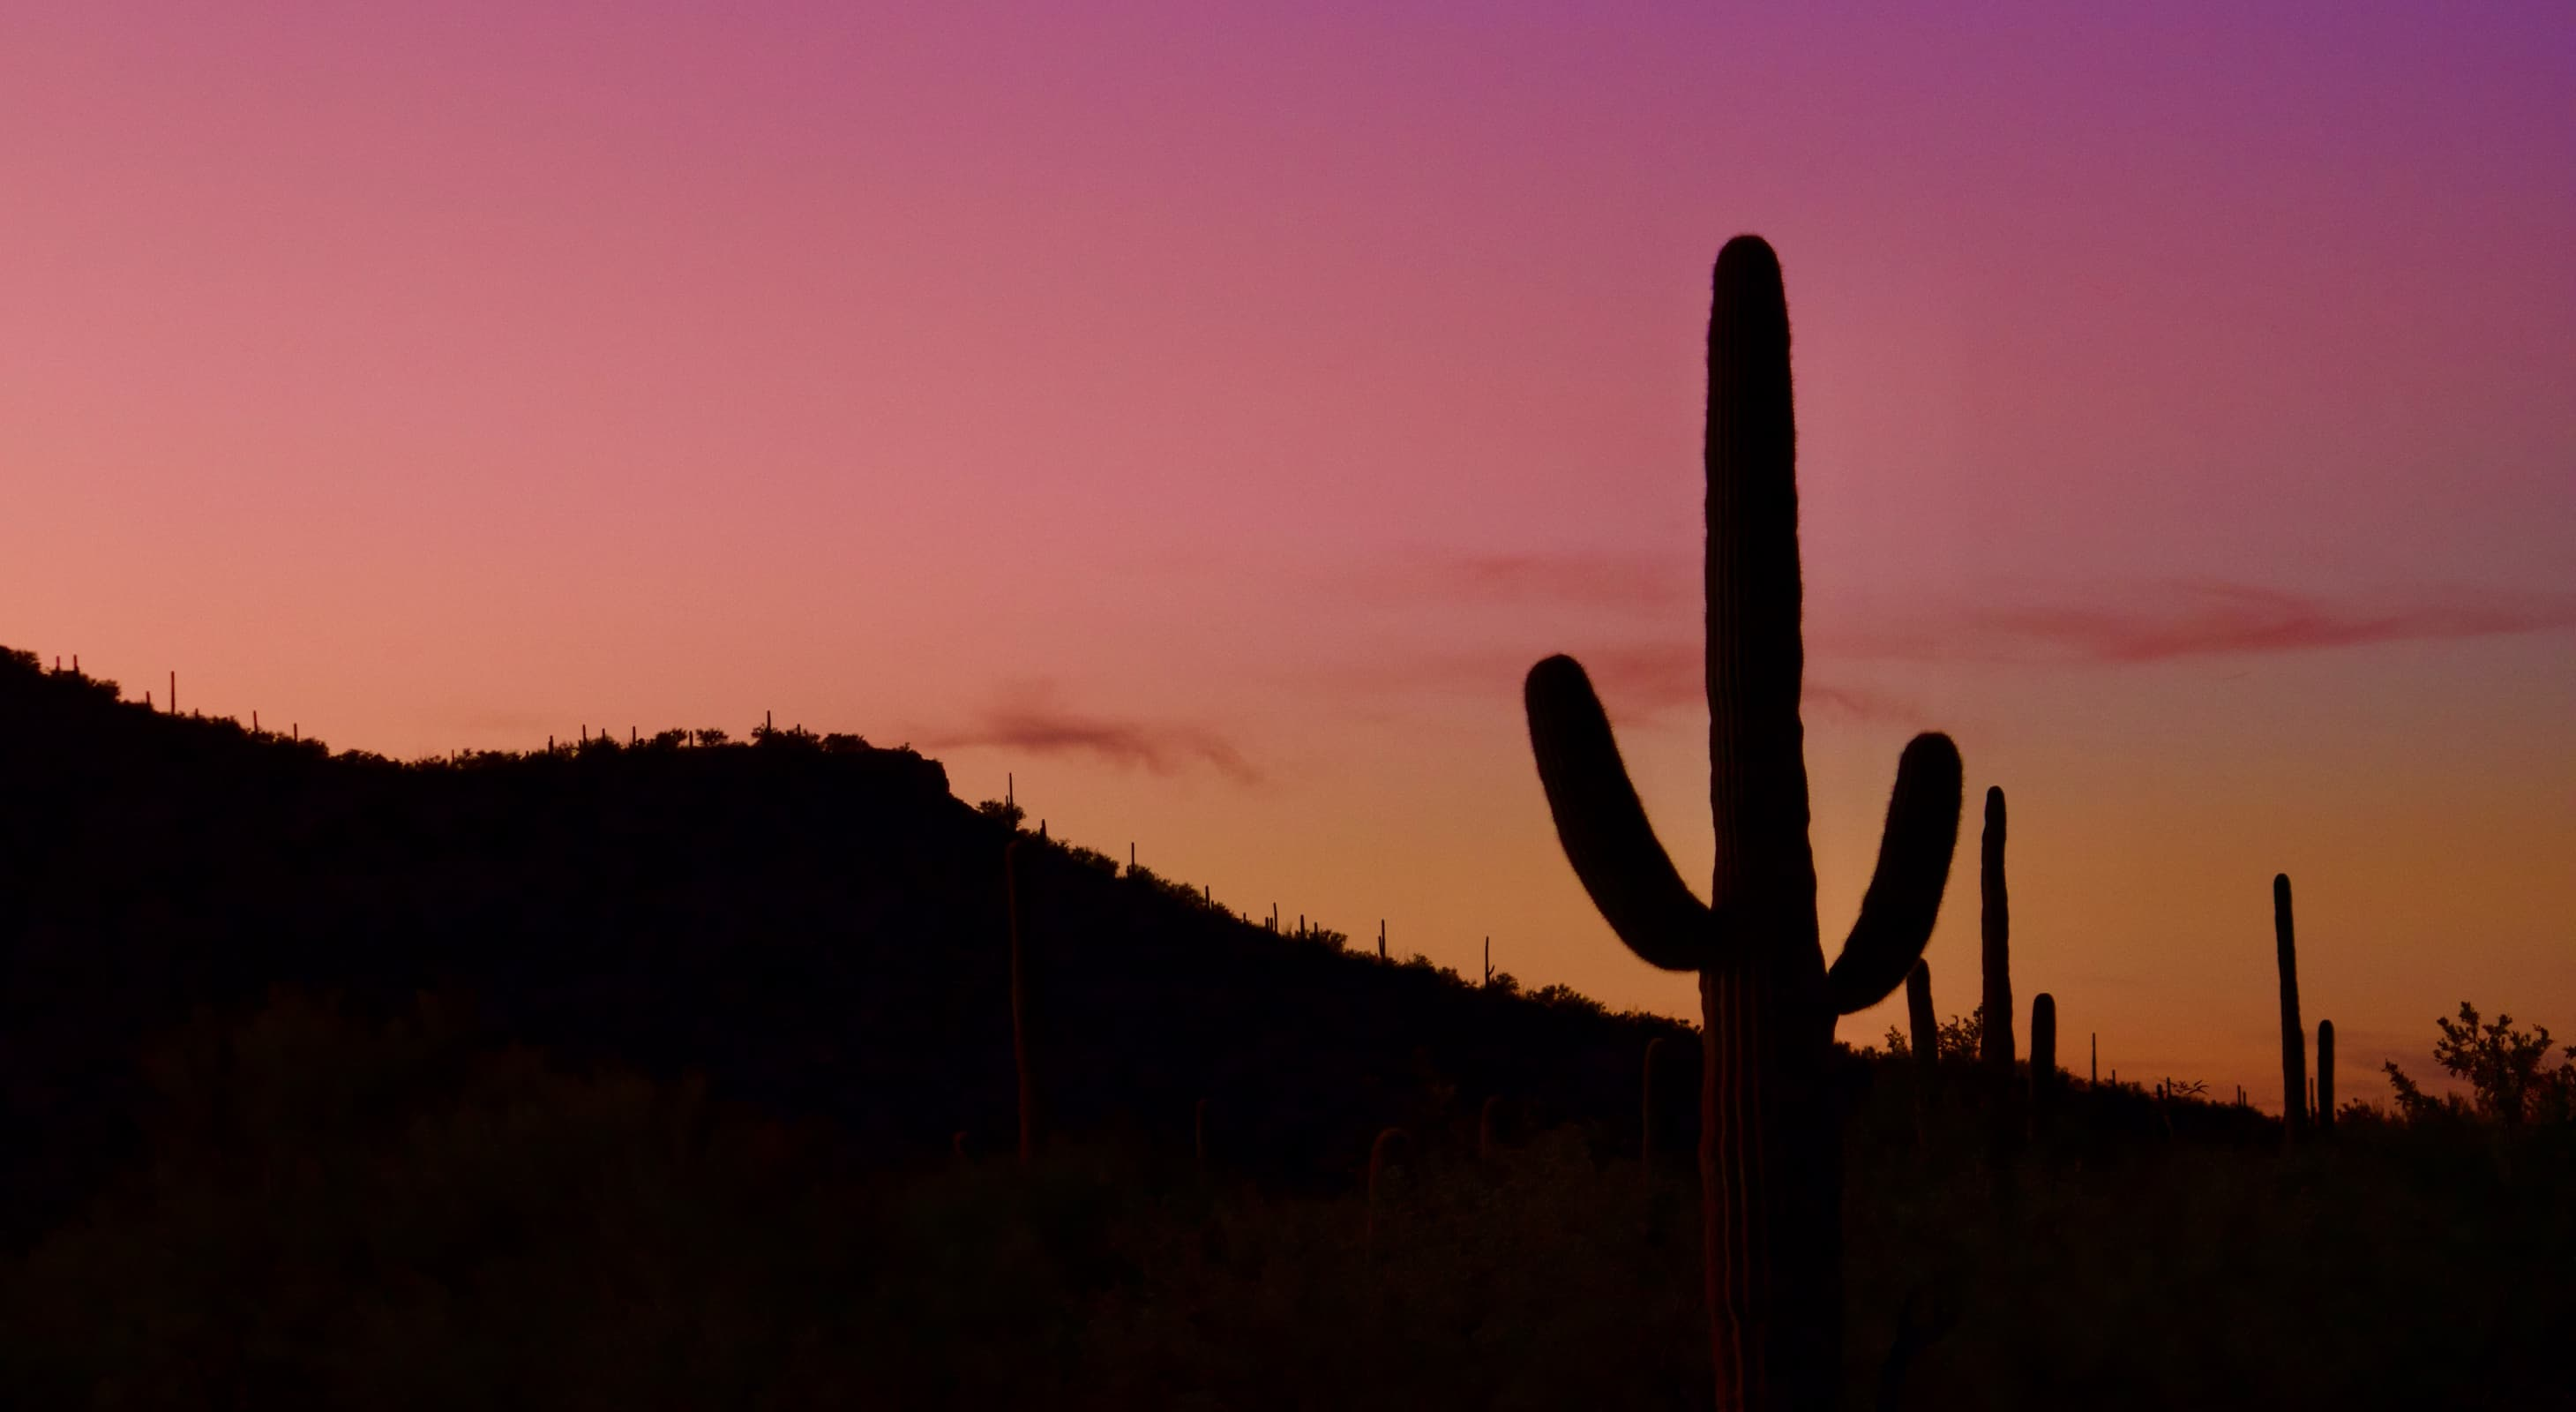 A cactus in Saguaro national park silhouetted in the sunset